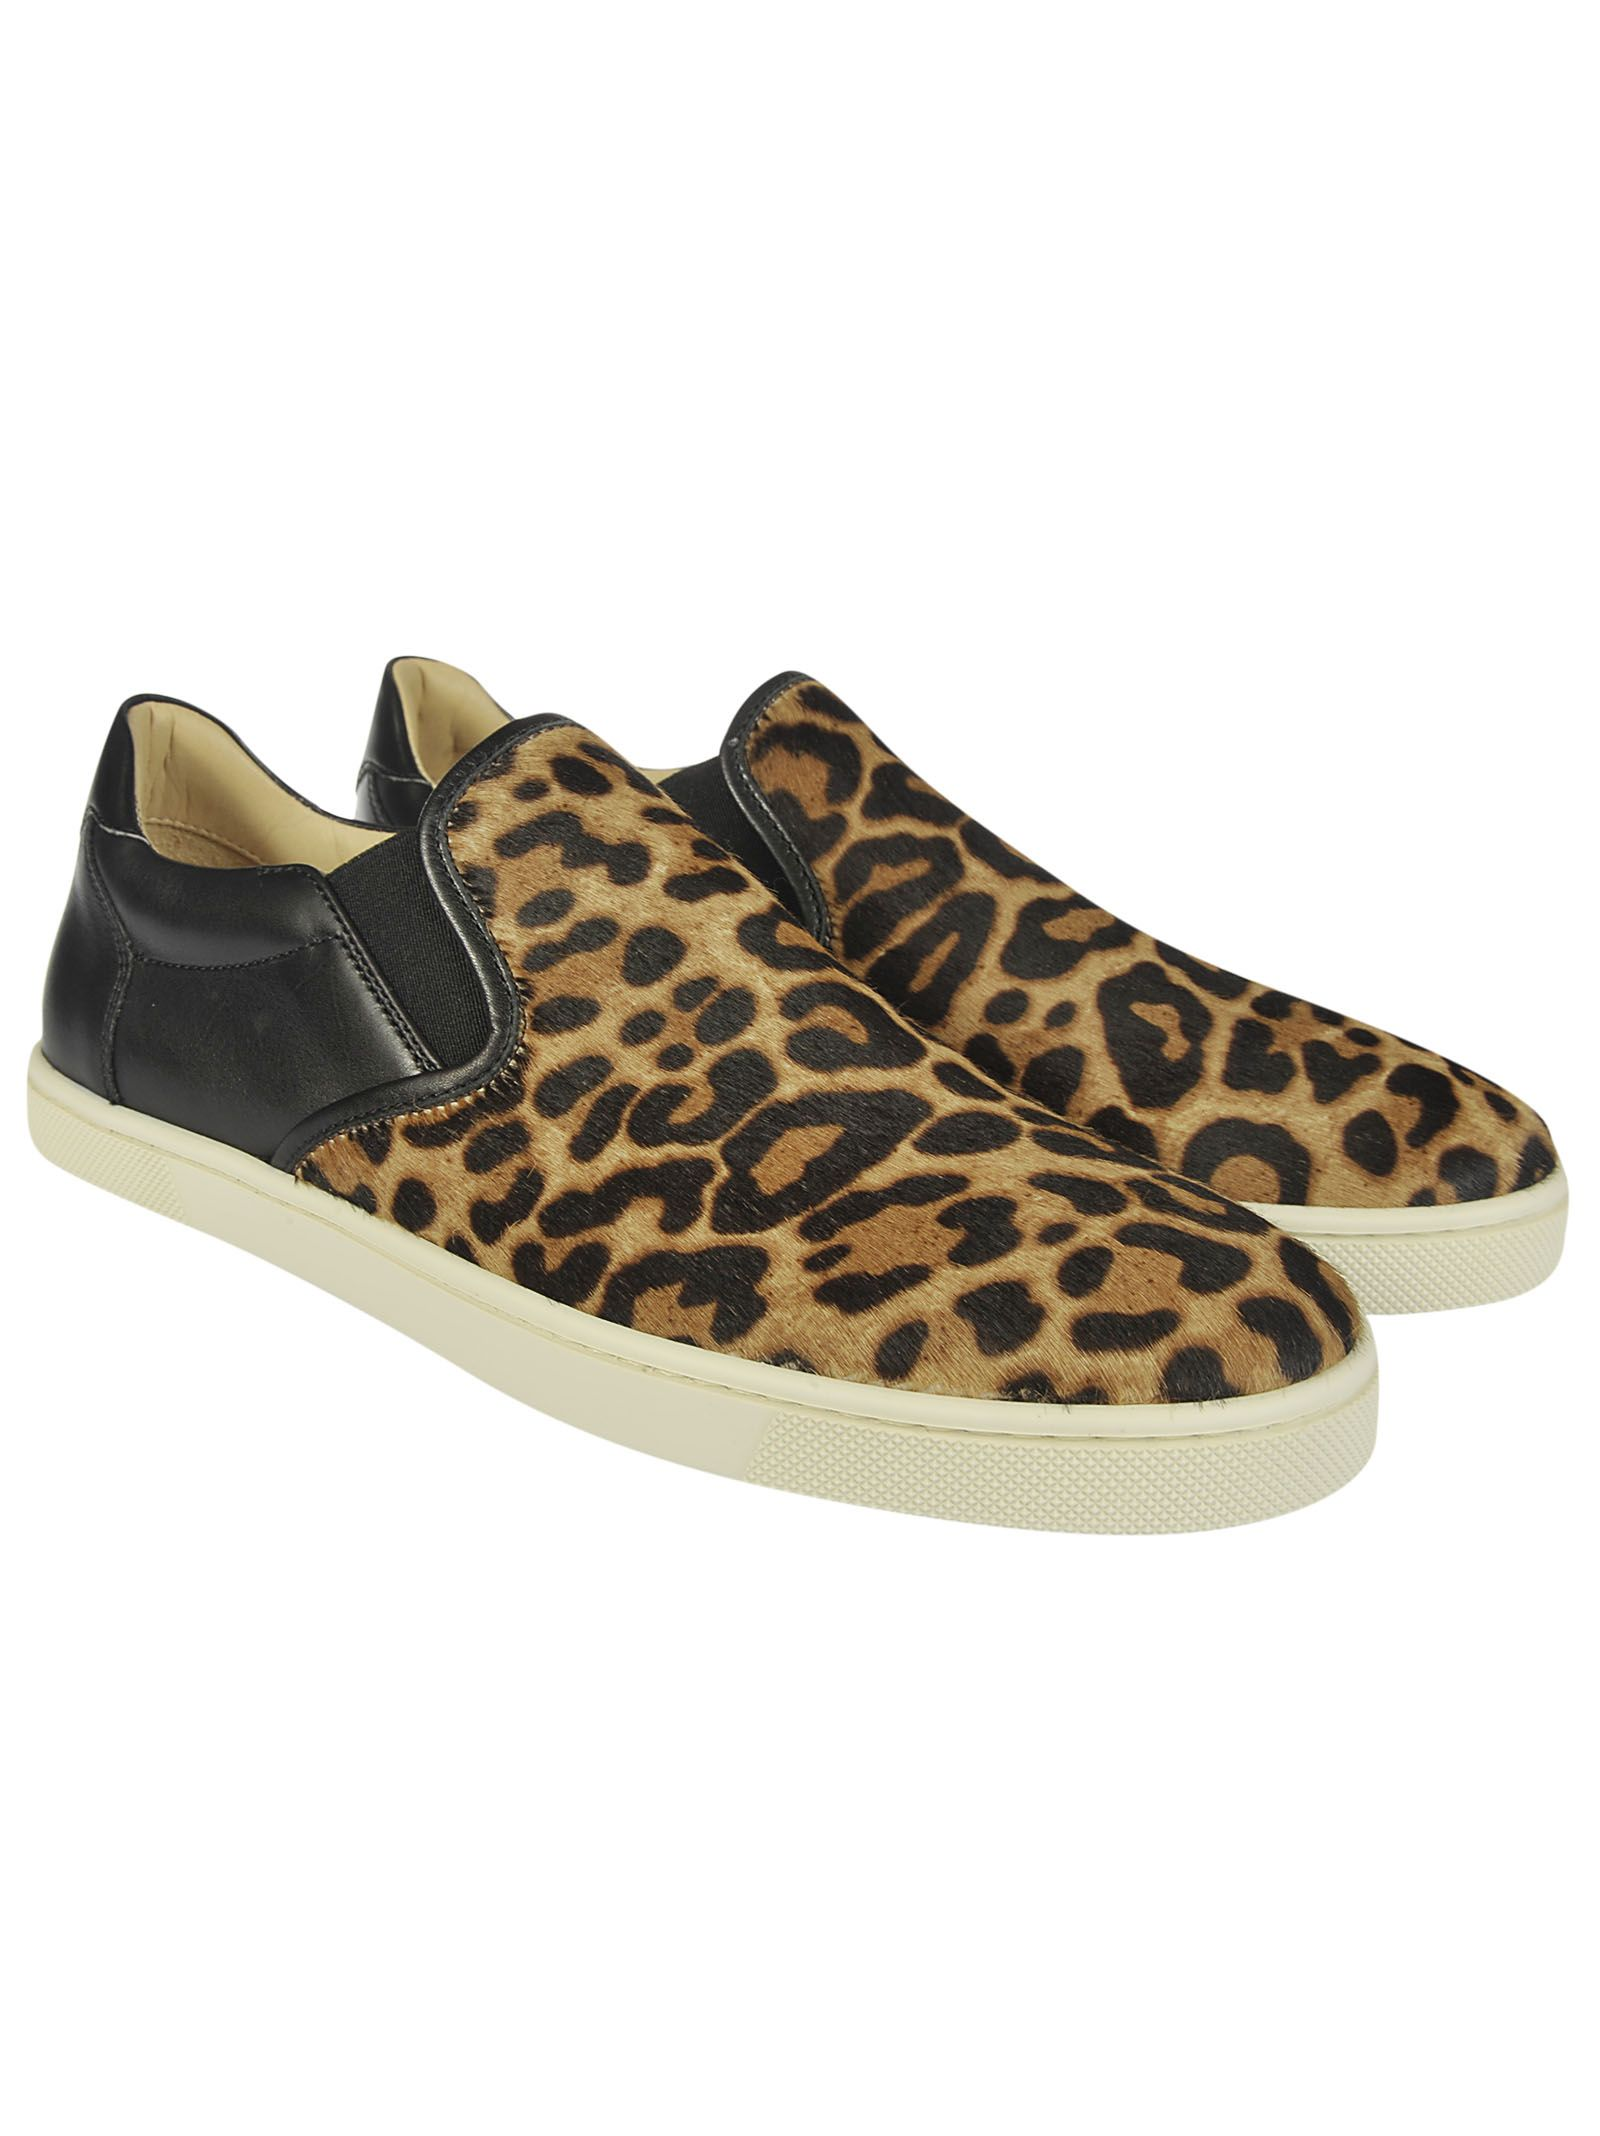 christian louboutin female christian louboutin master key flat sleeper